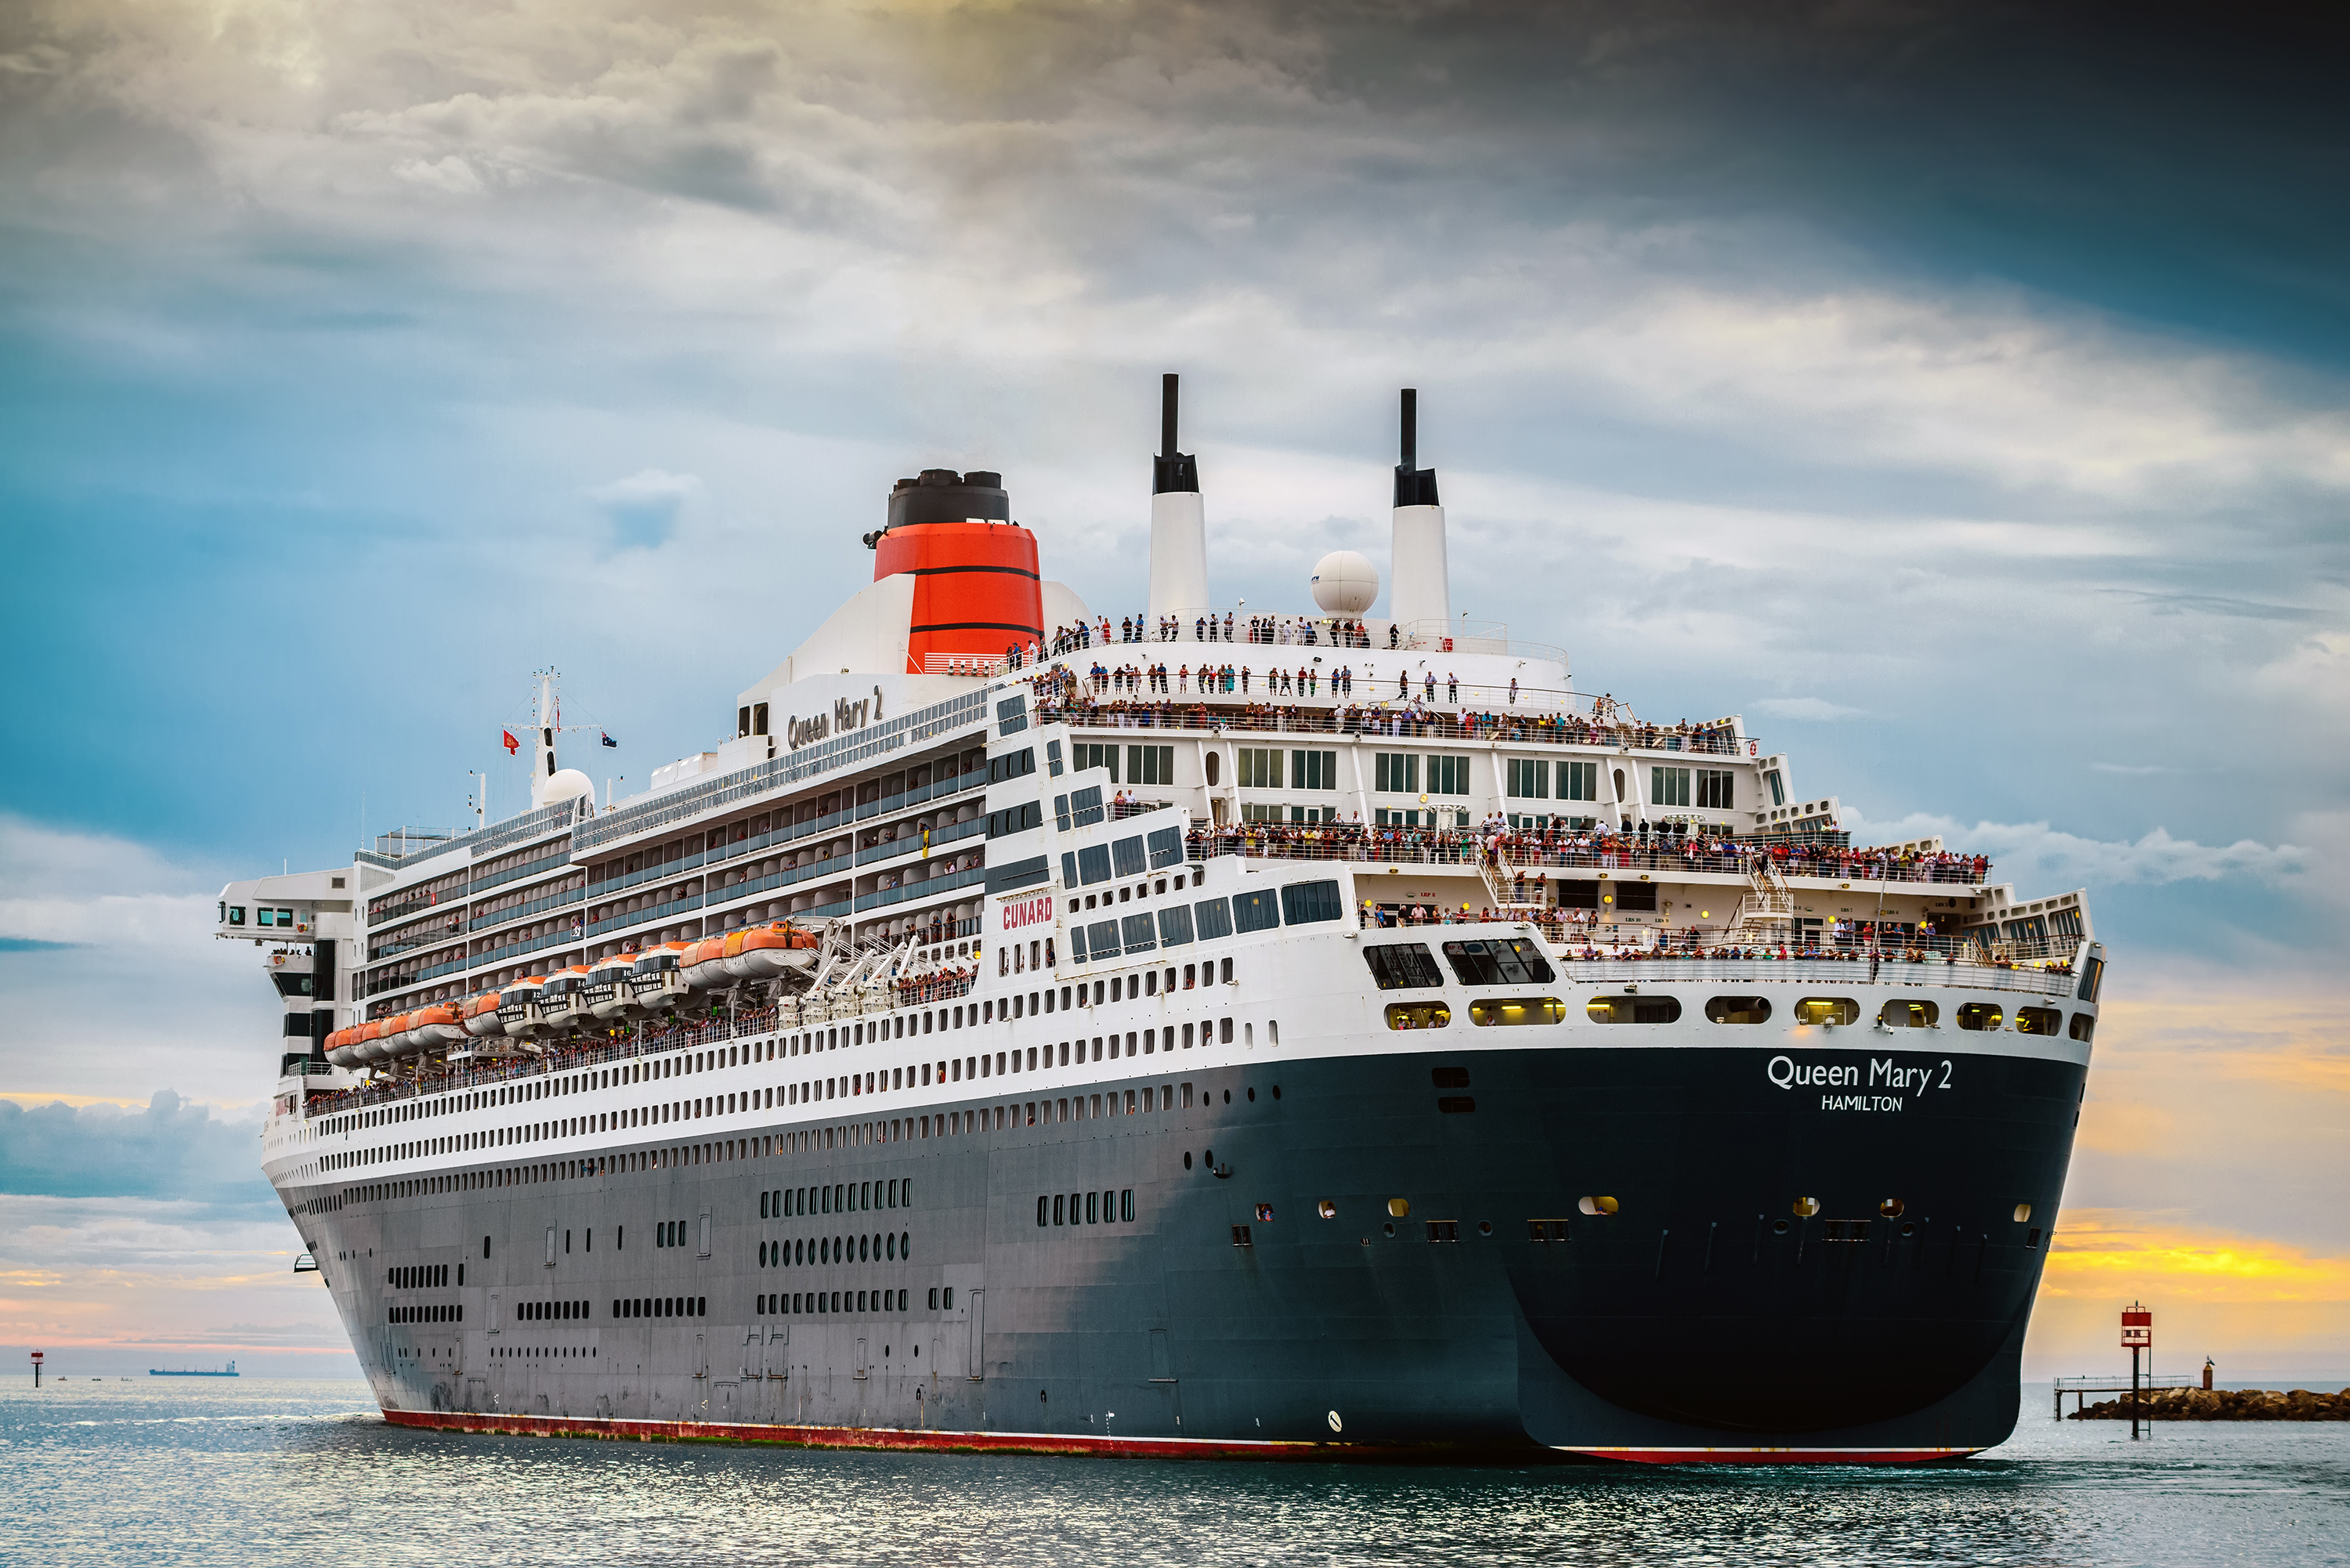 Maritime attorney explains passenger overboard on queen mary 2 for Queen mary 2 interieur